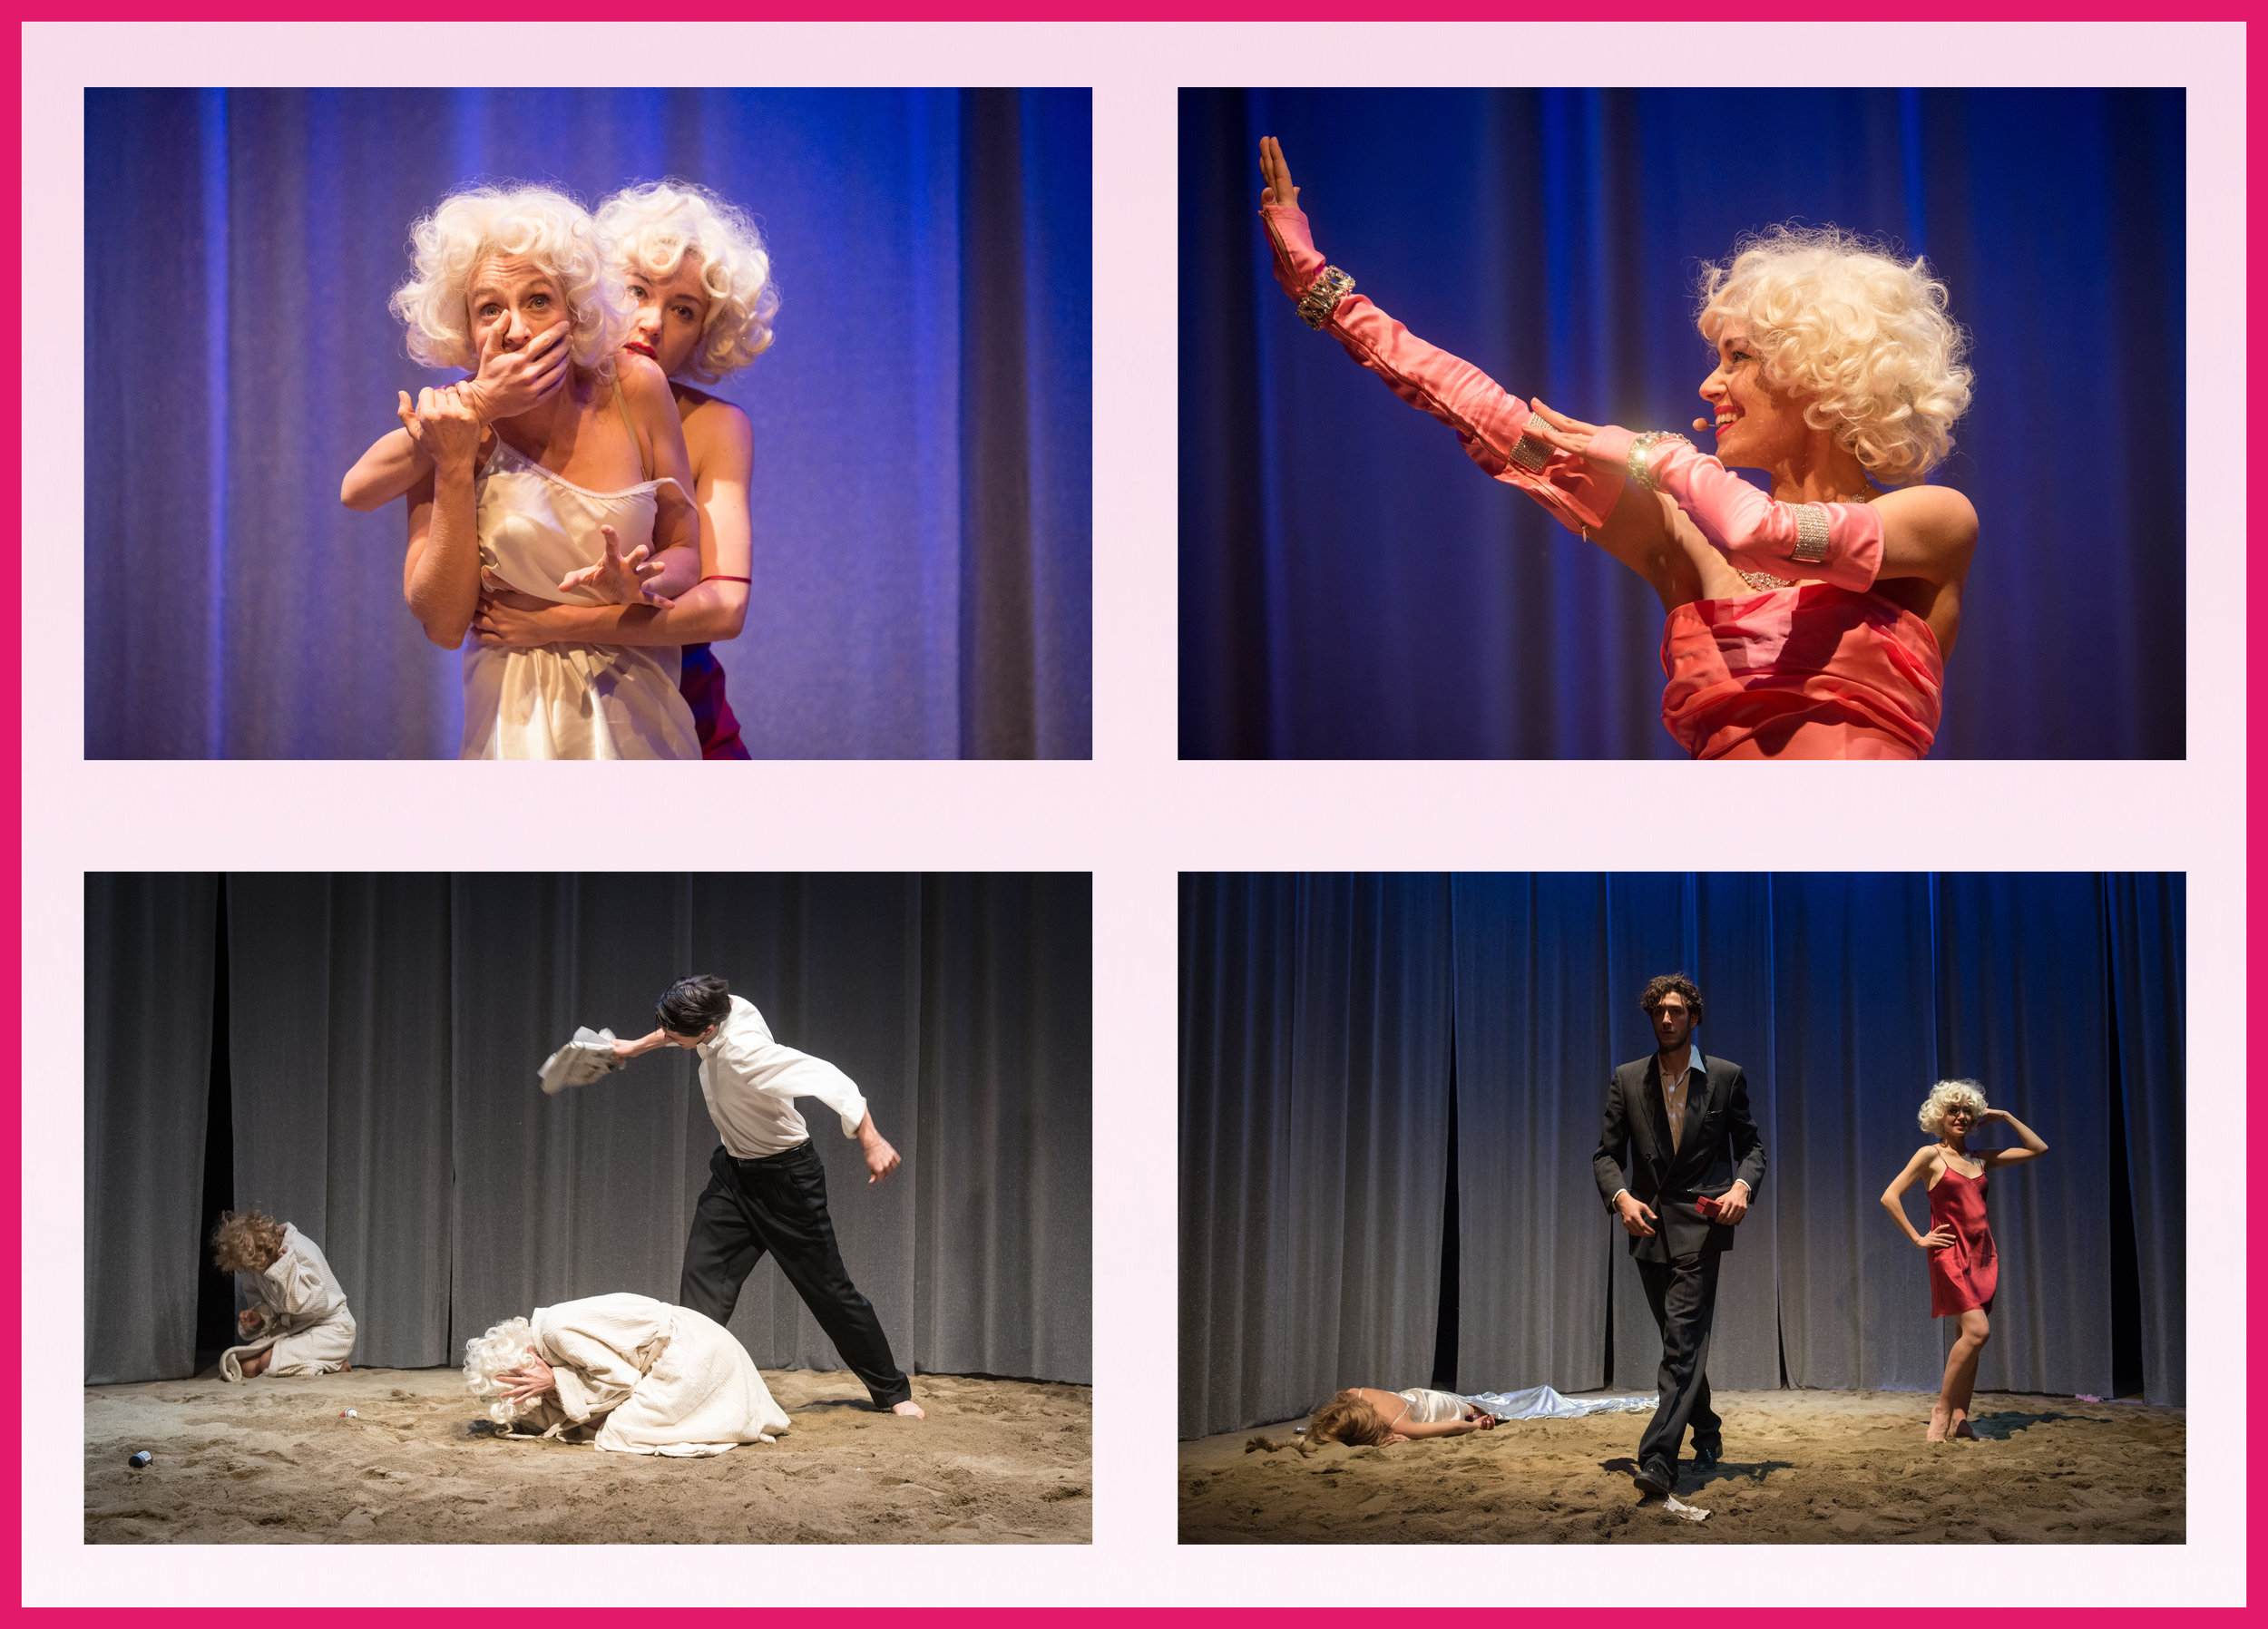 Progression of Marilyn/ Norma Jeane's life unfolding on stage at the Italian debut